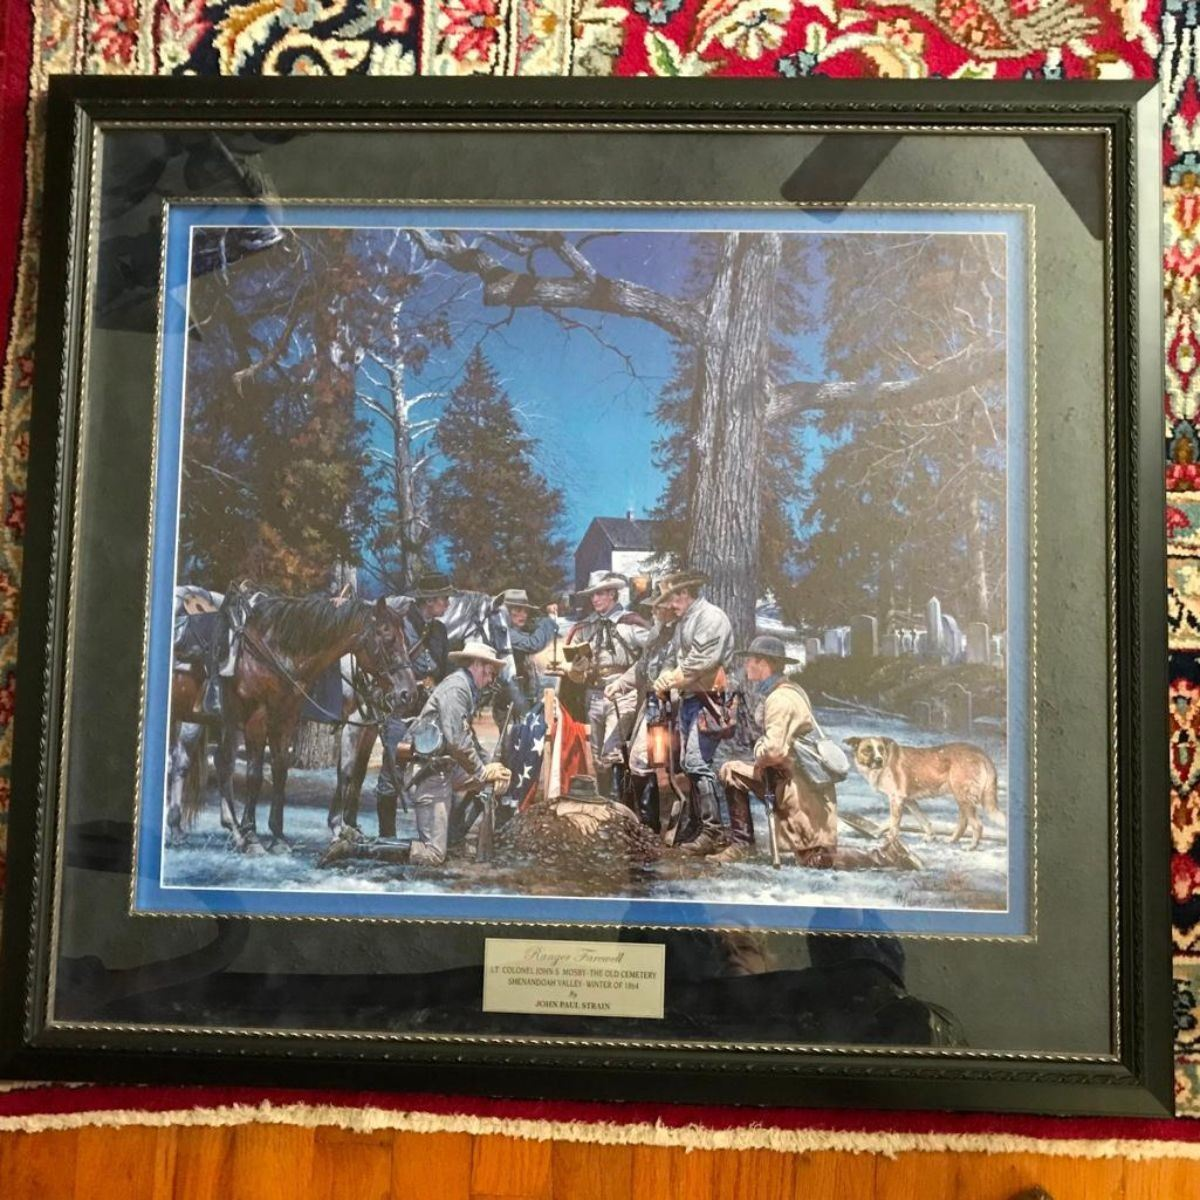 John Paul Strain/'s RANGER FAREWELL Limited Edition Lithographic Print Signed